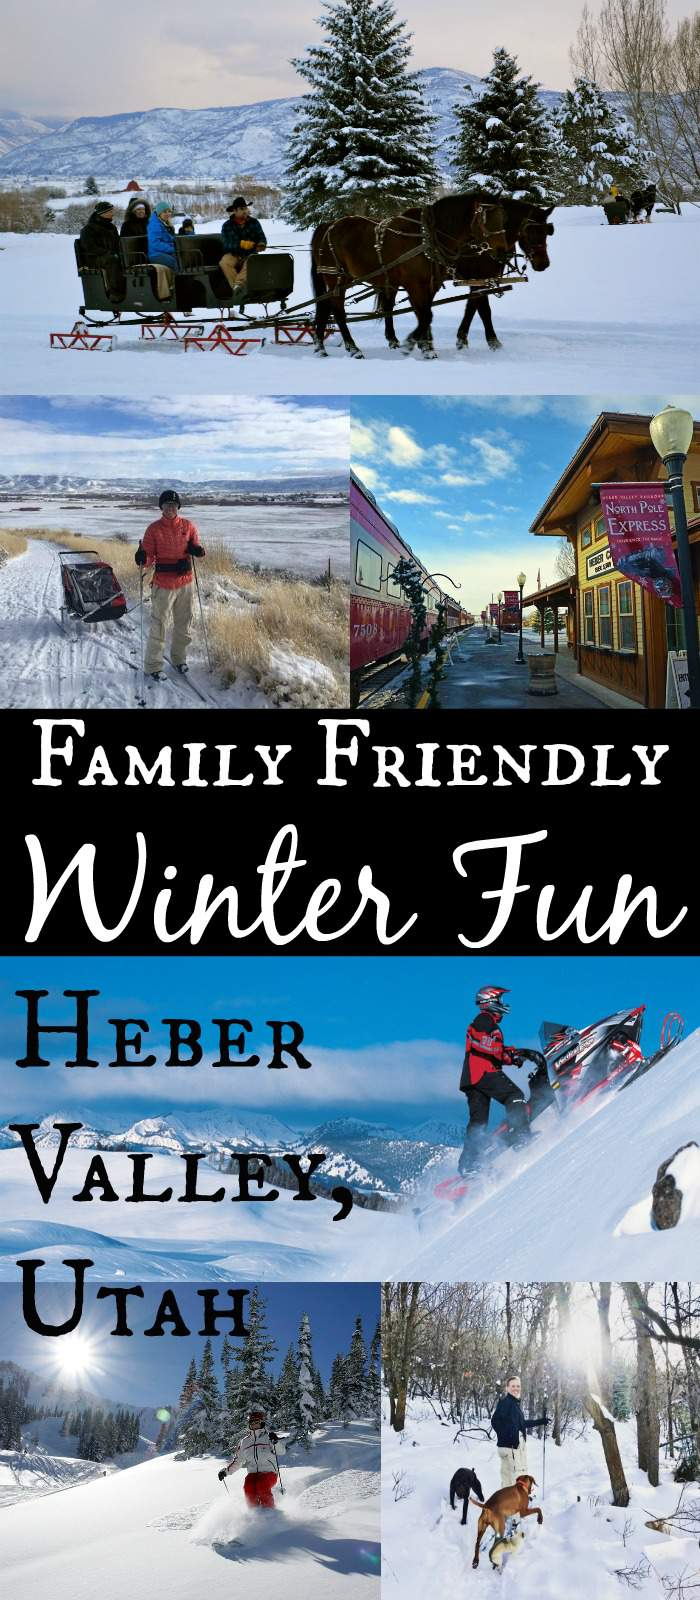 Family Friendly Winter Fun in Heber Valley, Utah